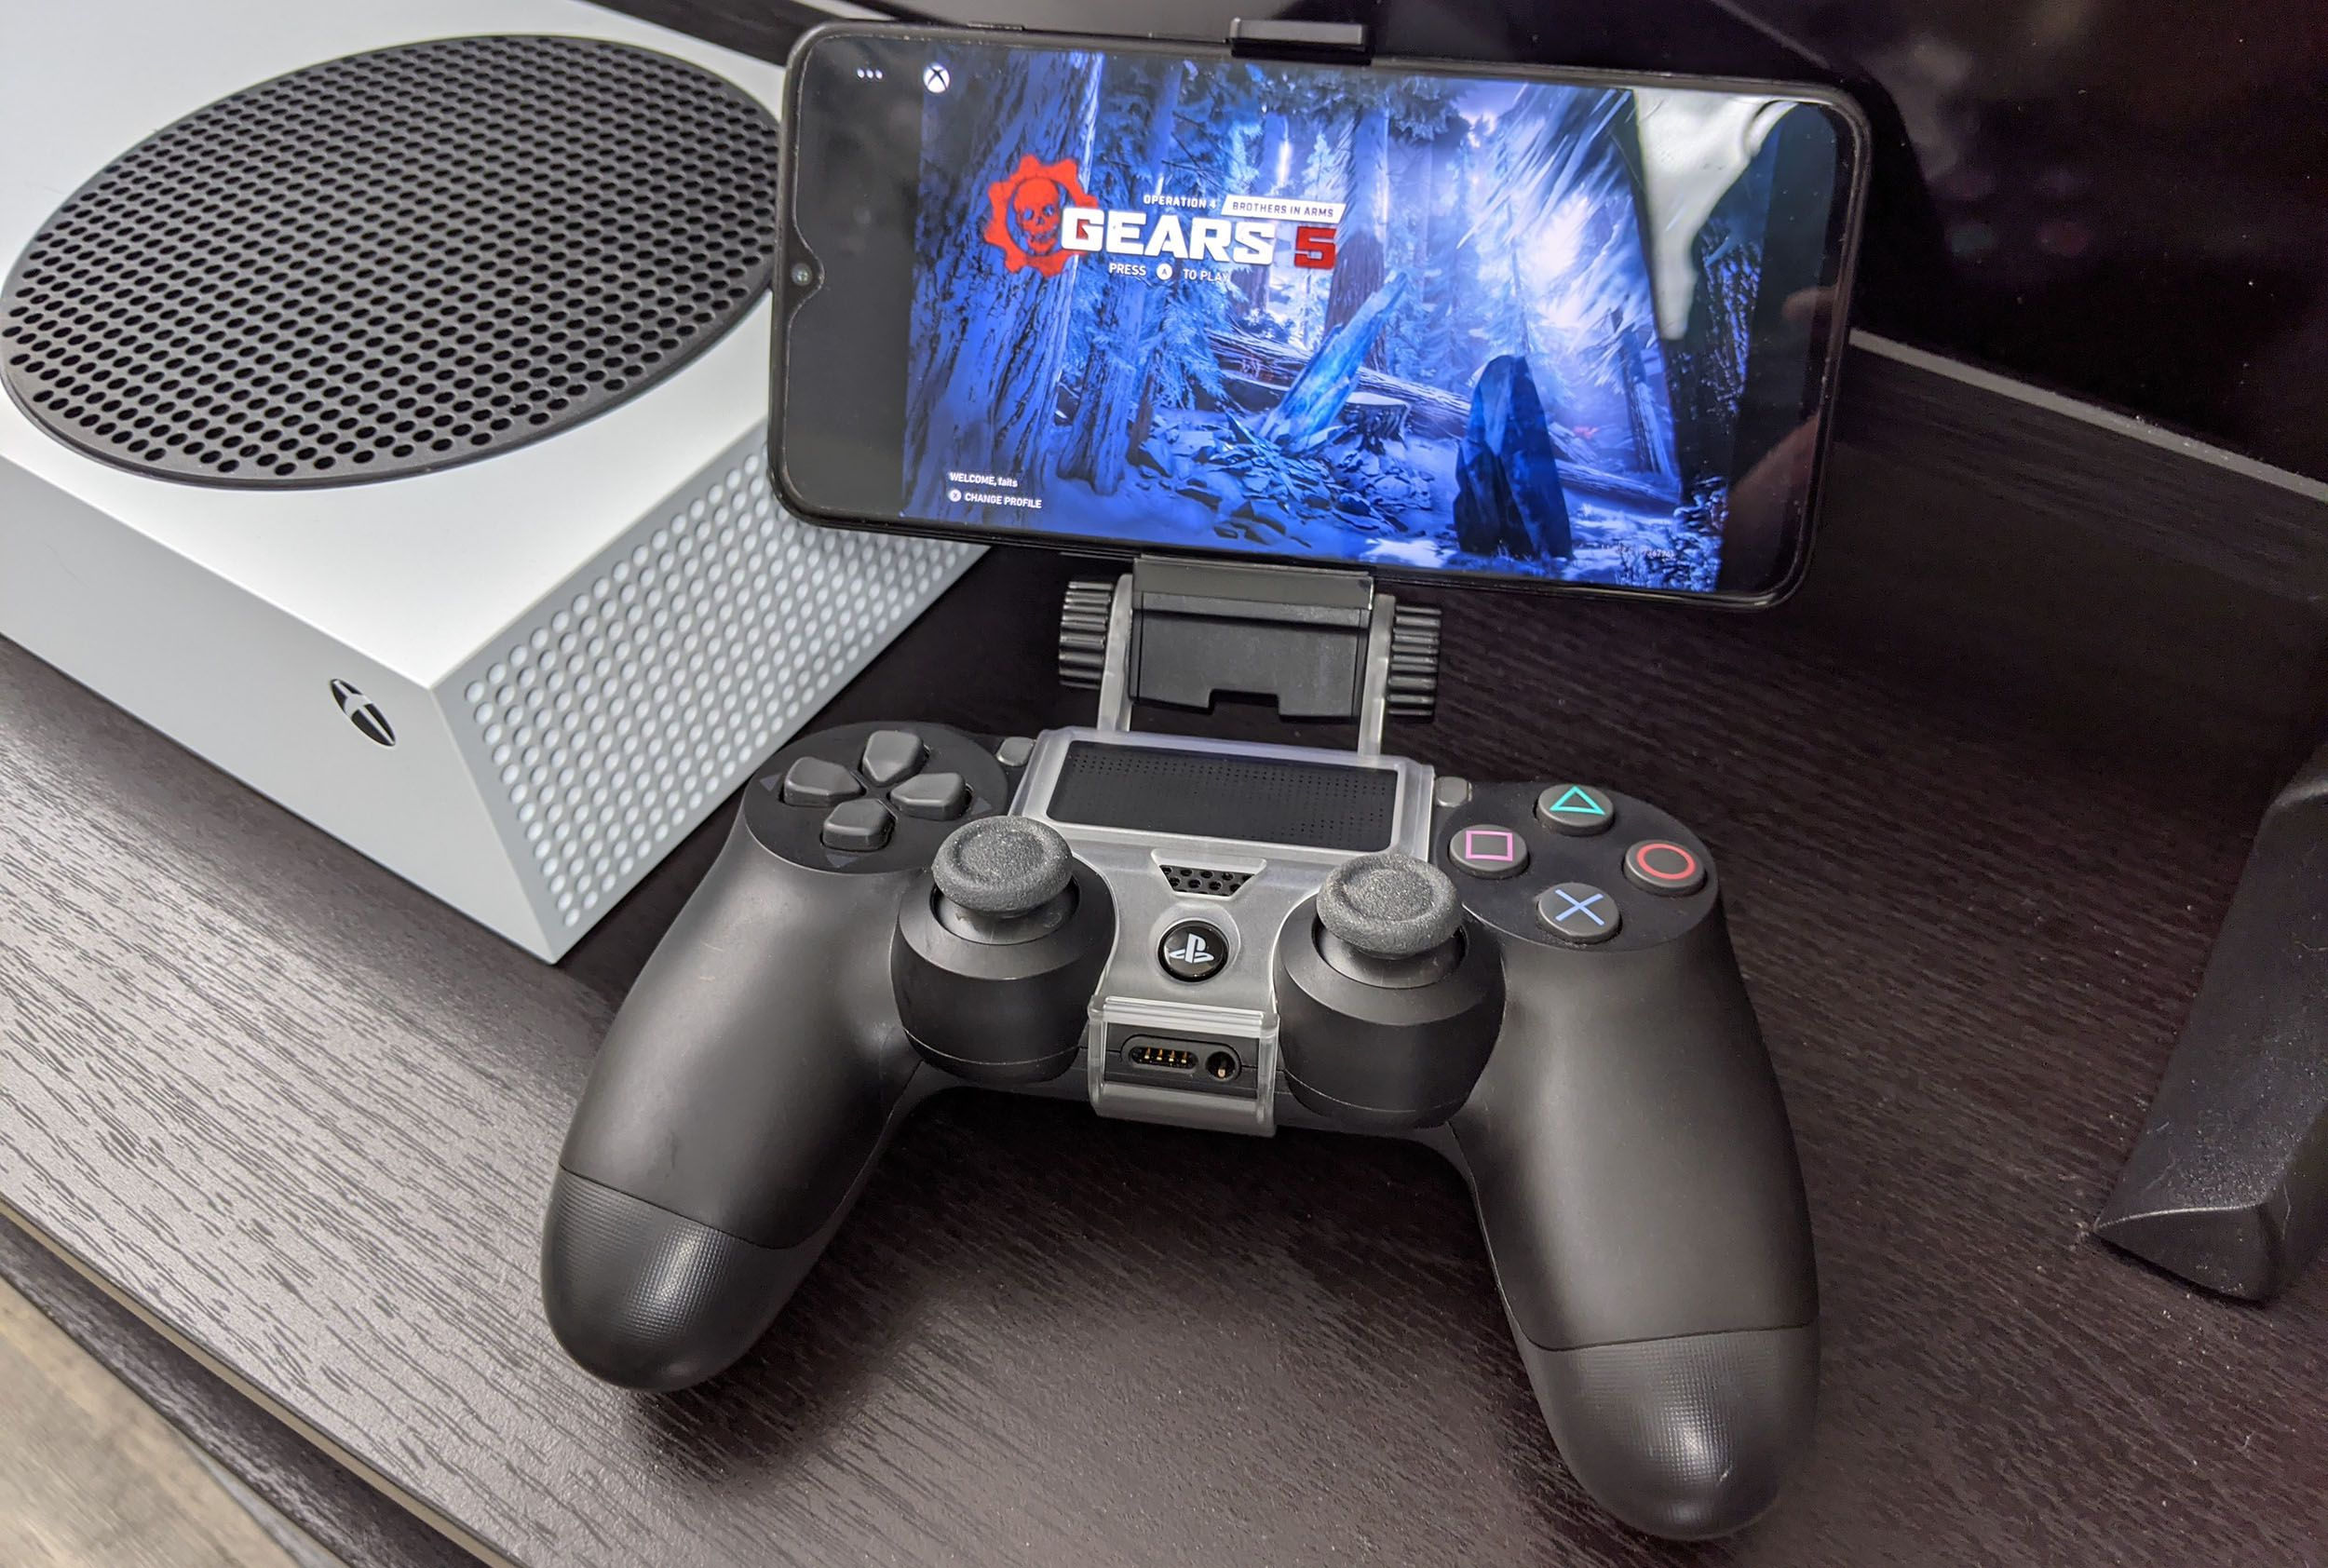 How to Use a PS4 Controller on Xbox Series X or S